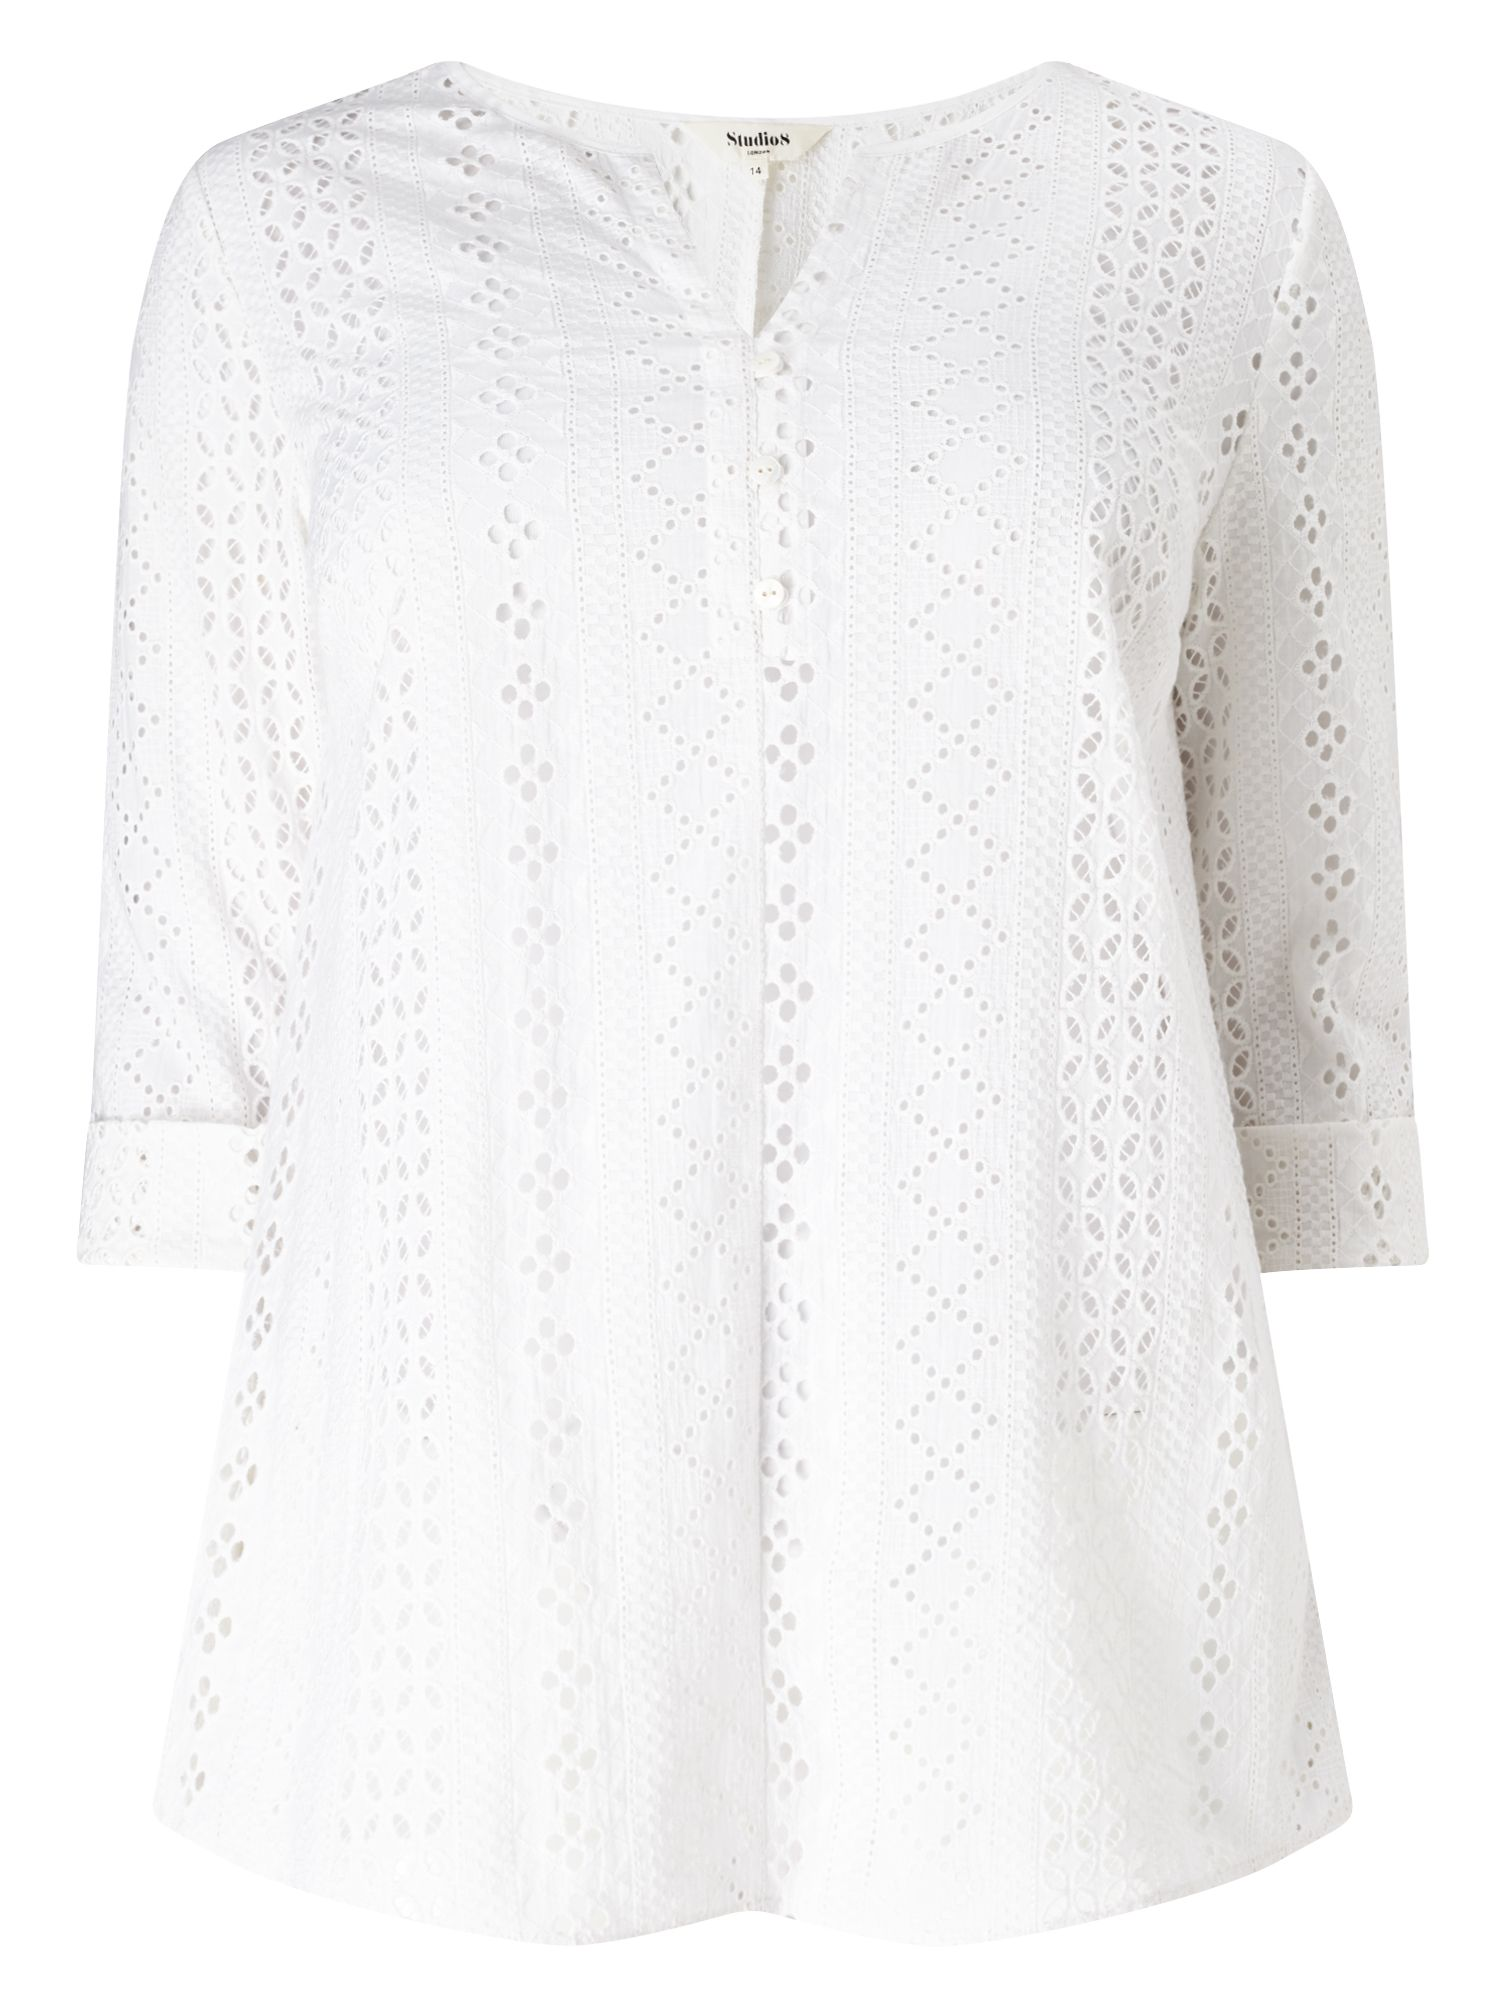 Studio 8 Anita Top, White